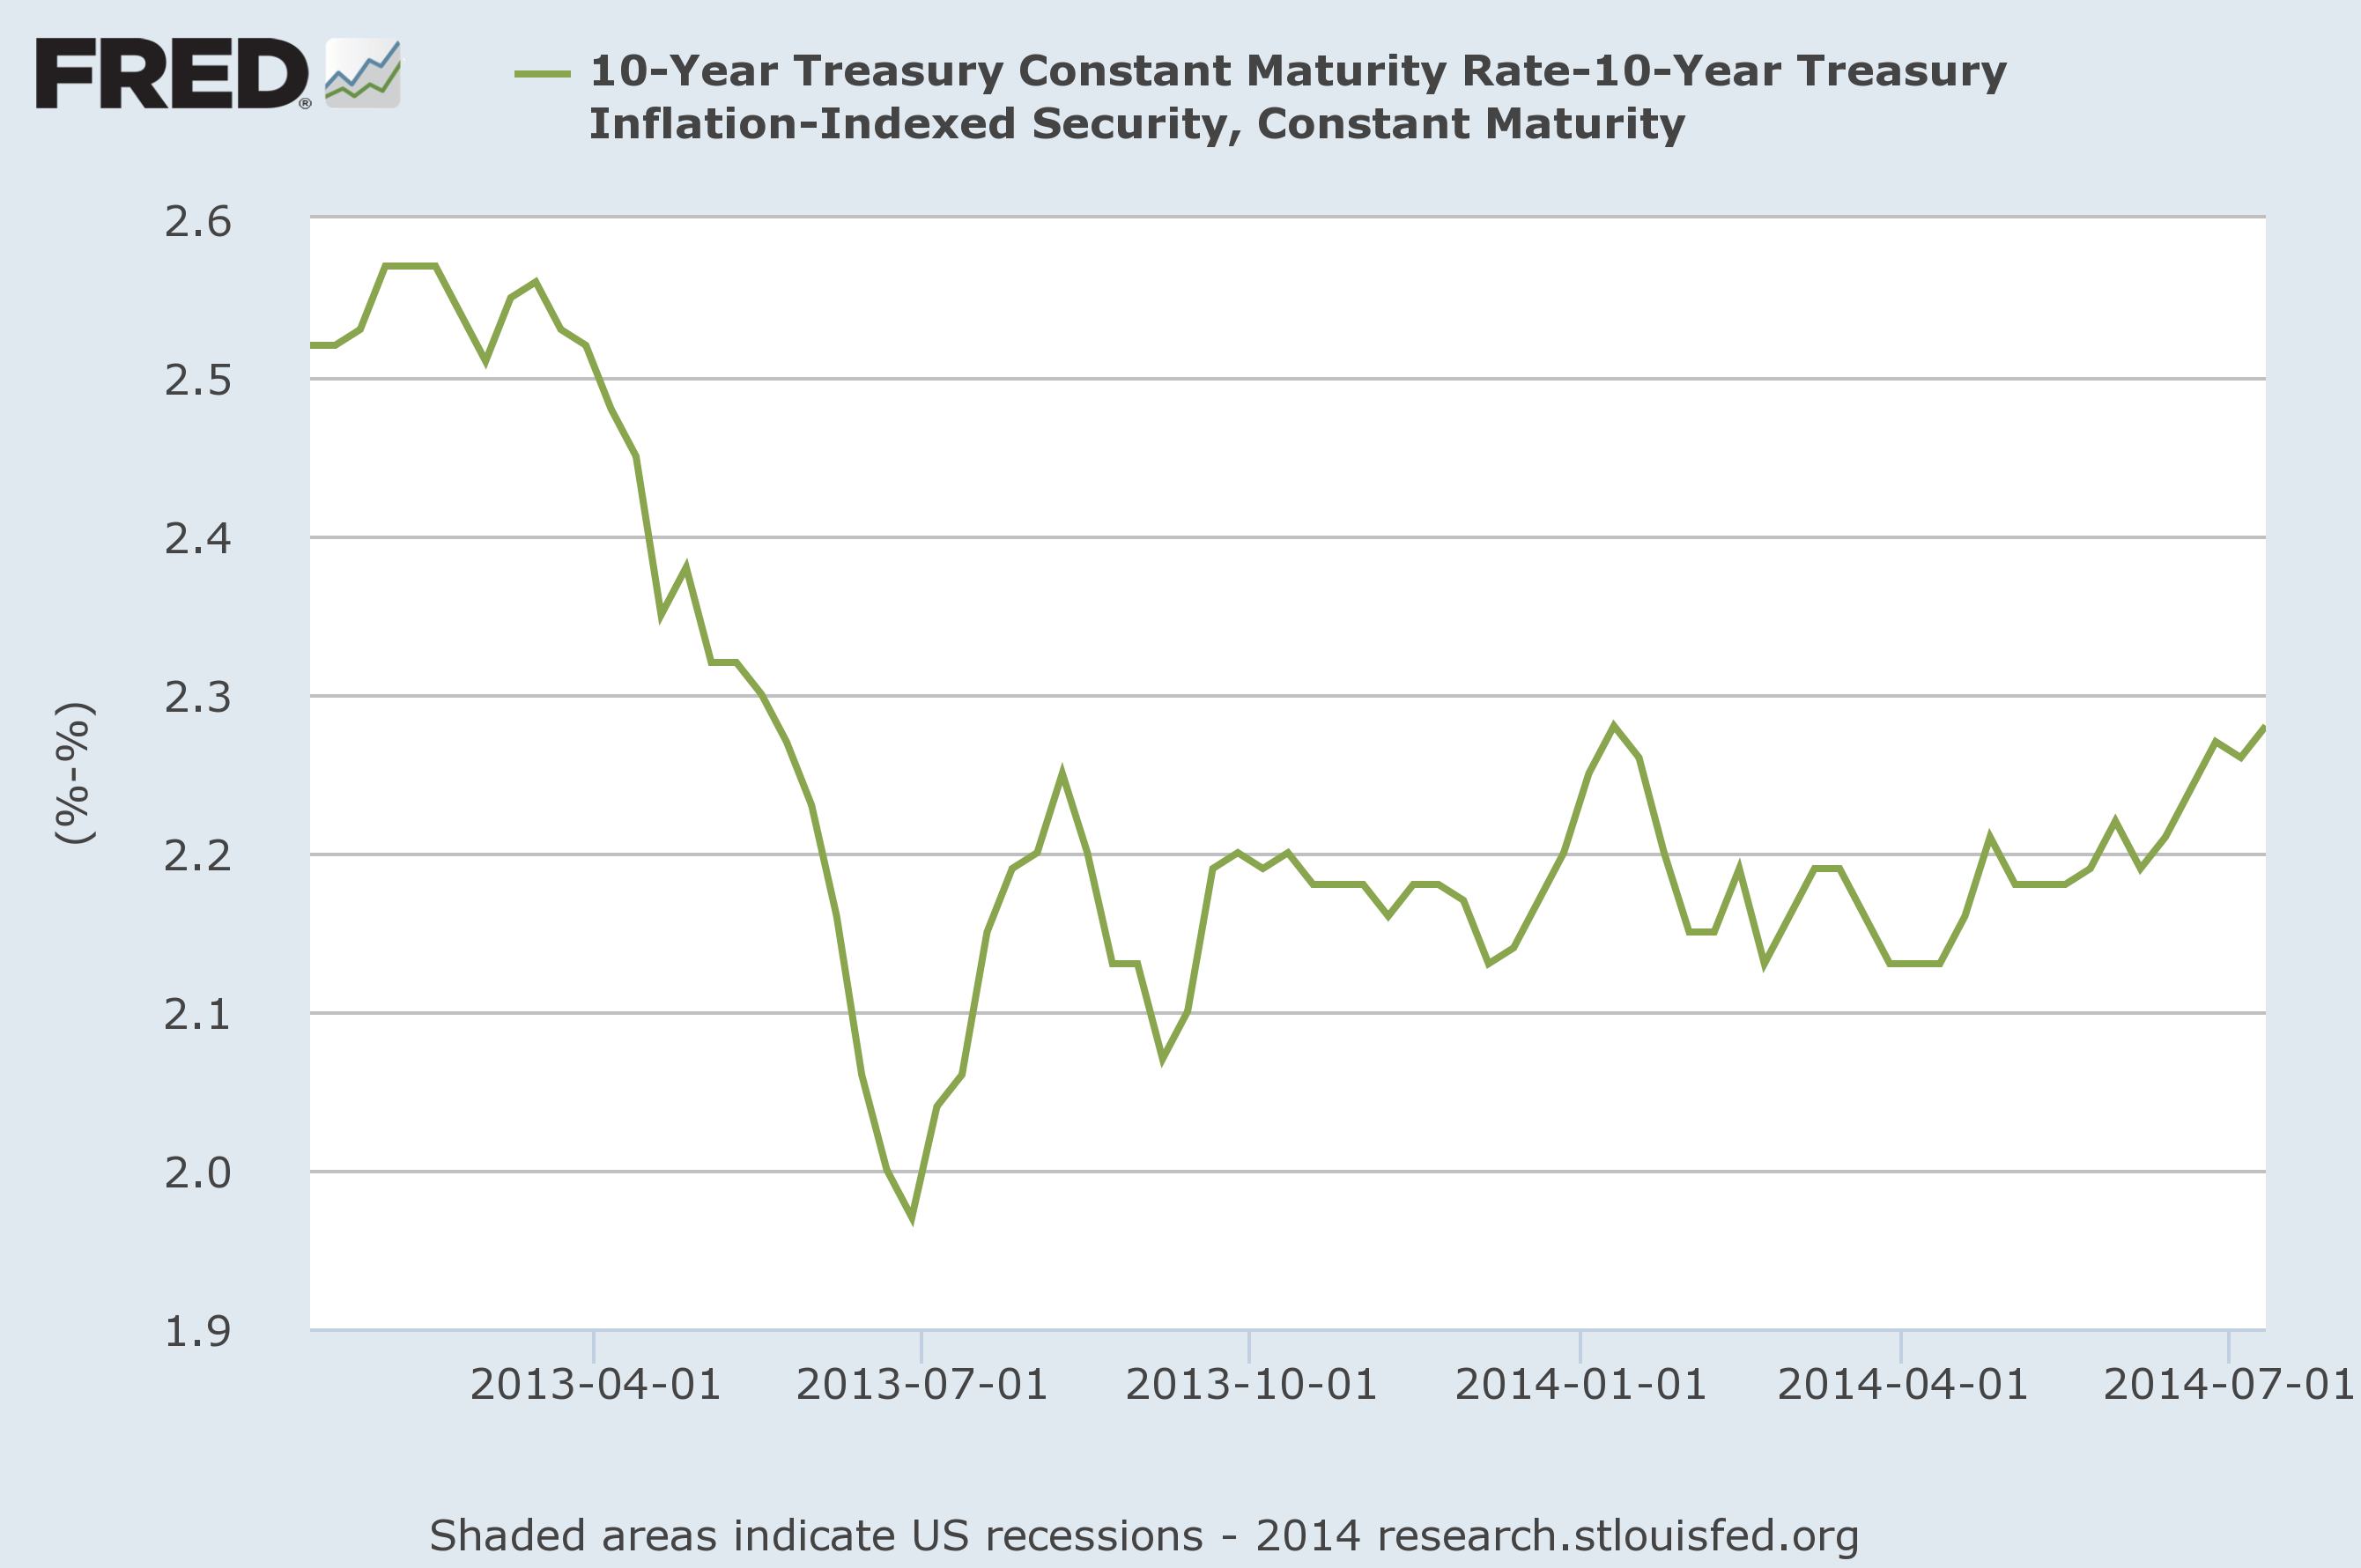 10-Year Treasury Yields minus 10-Year Inflation Indexed (TIPS) Yields